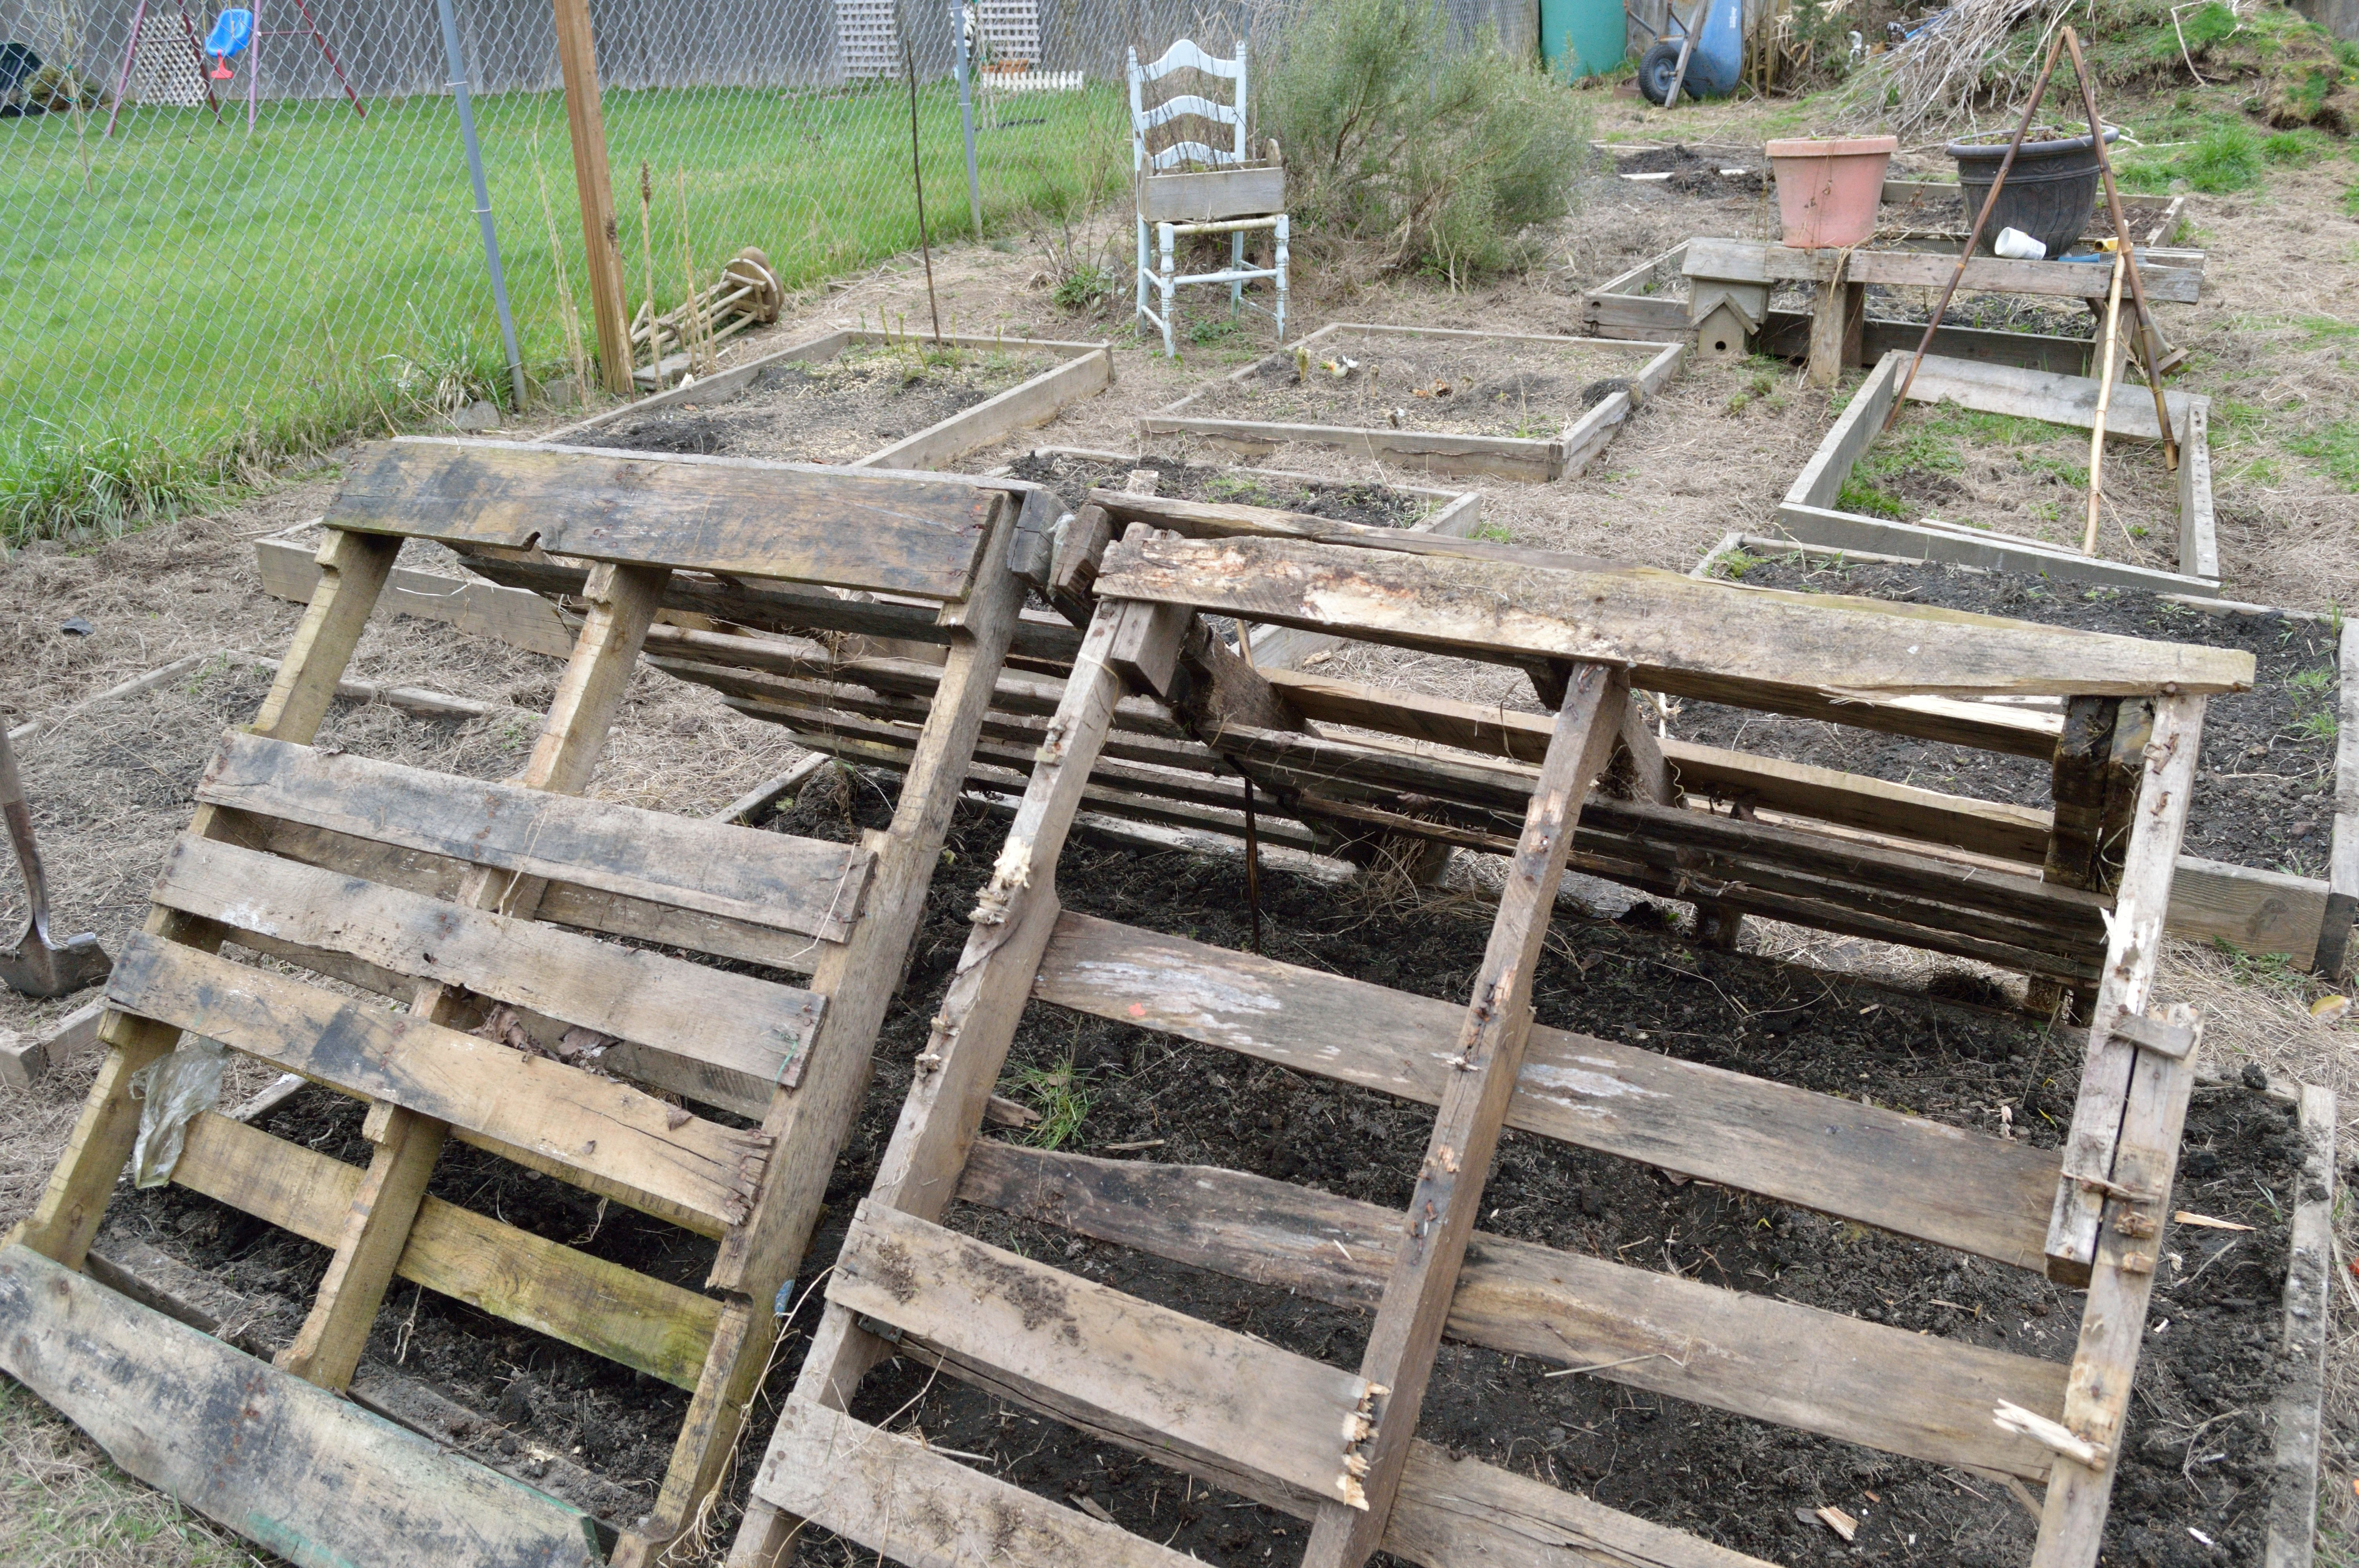 How To Make A Wooden Pallet Greenhouse For One Dollar ...